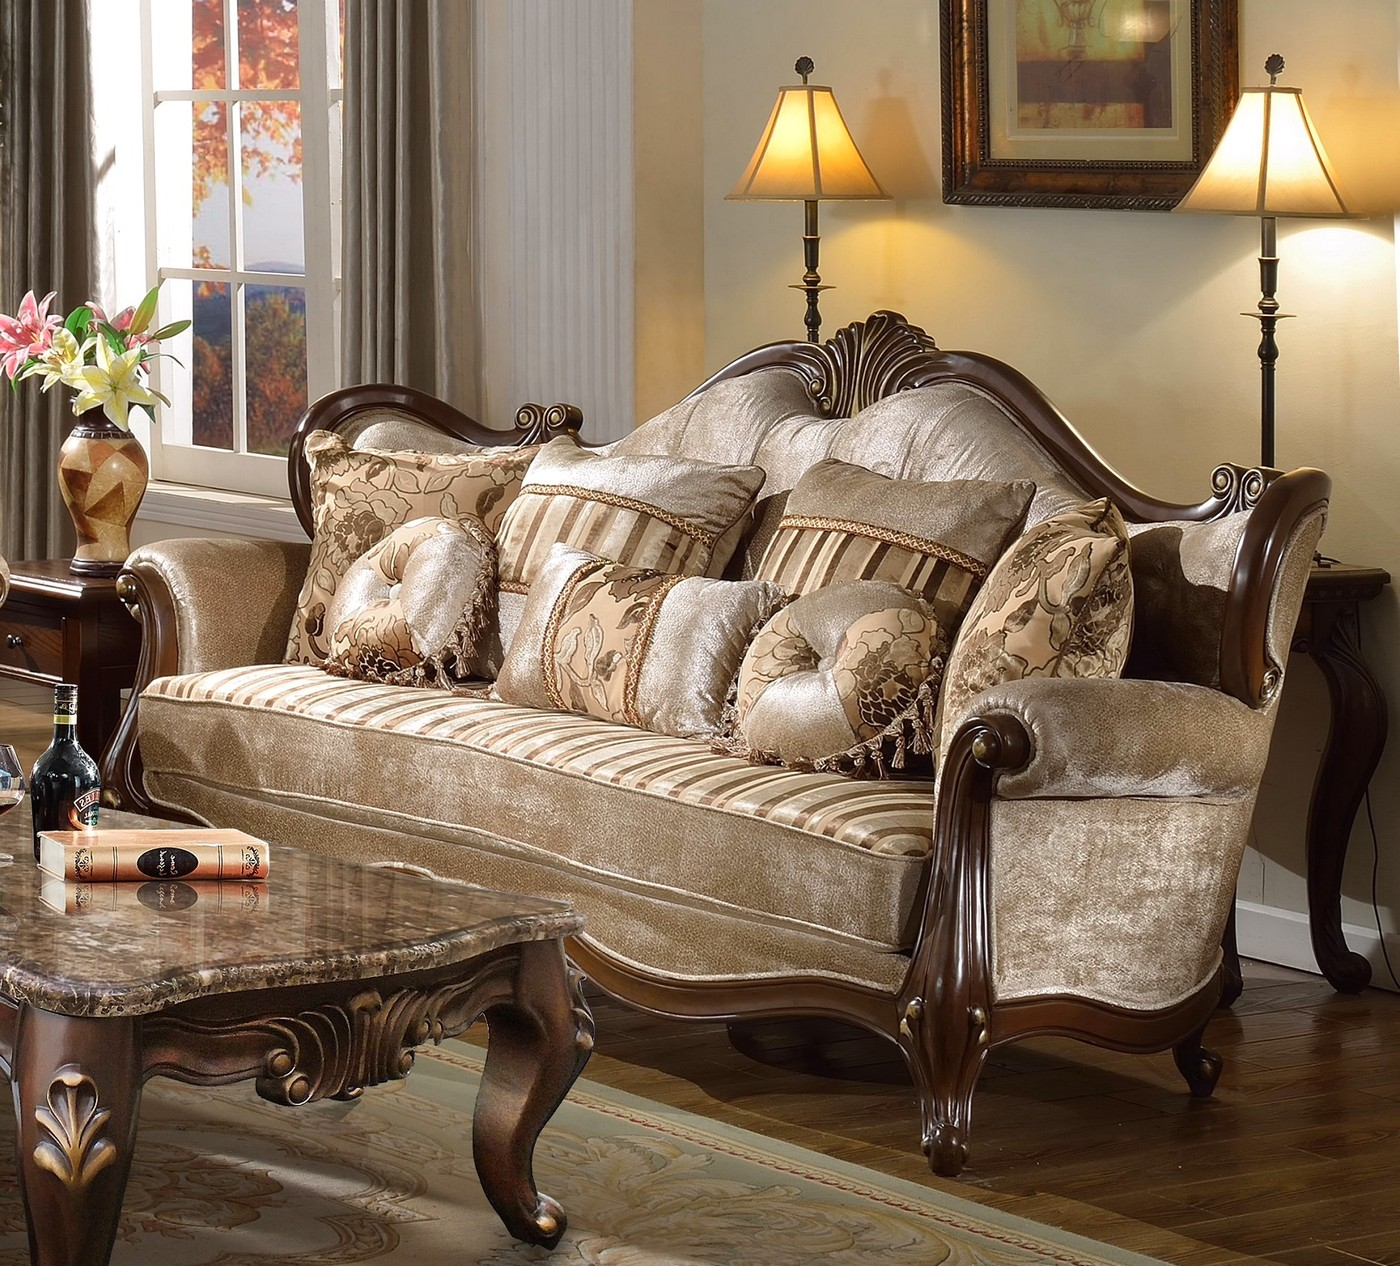 Marseille french provincial sofa u0026 loveseat set in